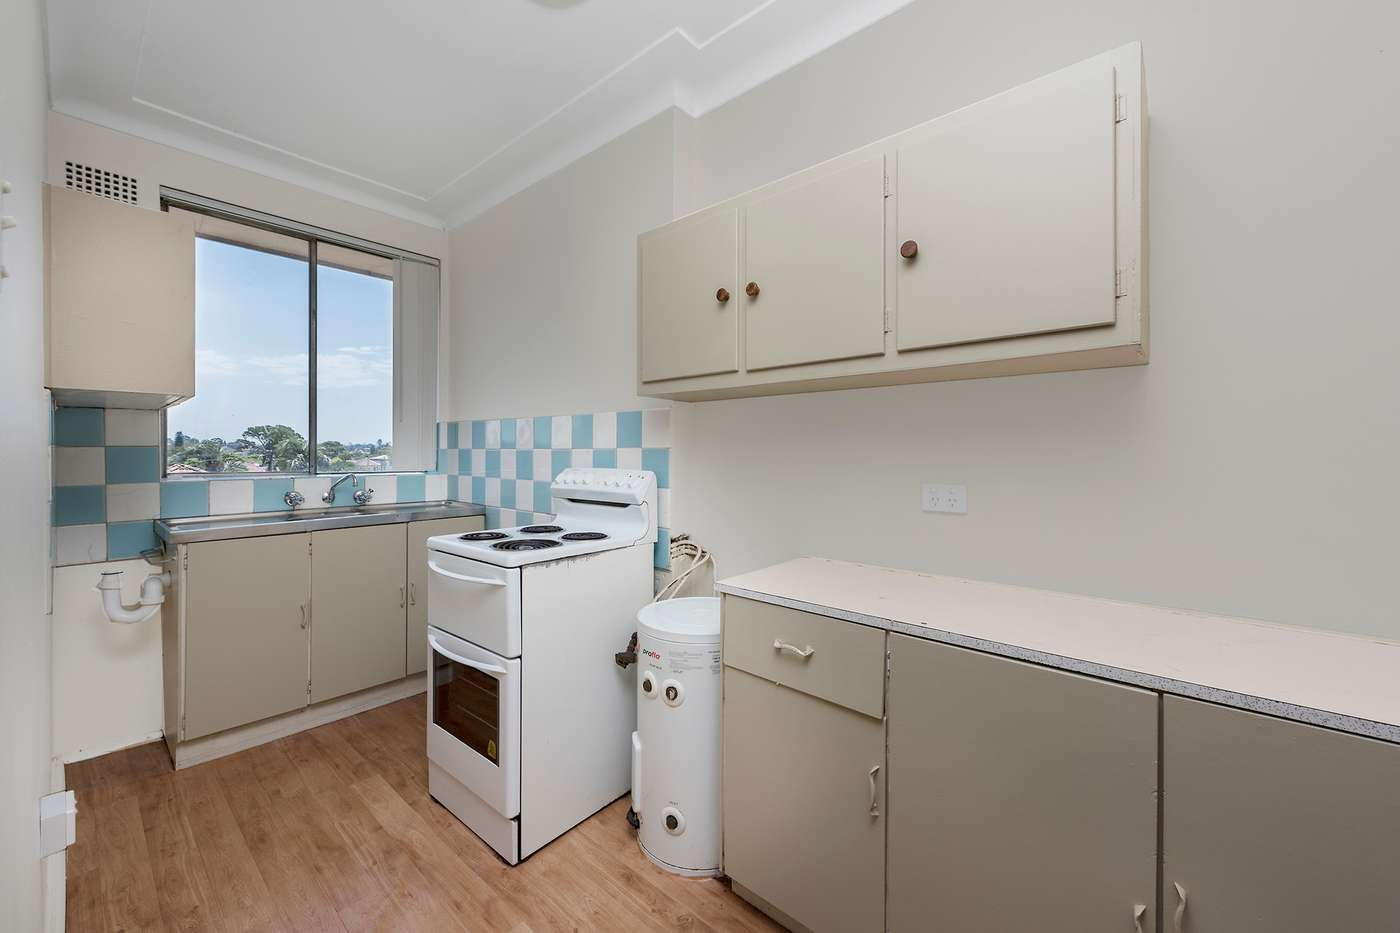 Main view of Homely unit listing, 5/187 Edwin Street, Croydon, NSW 2132